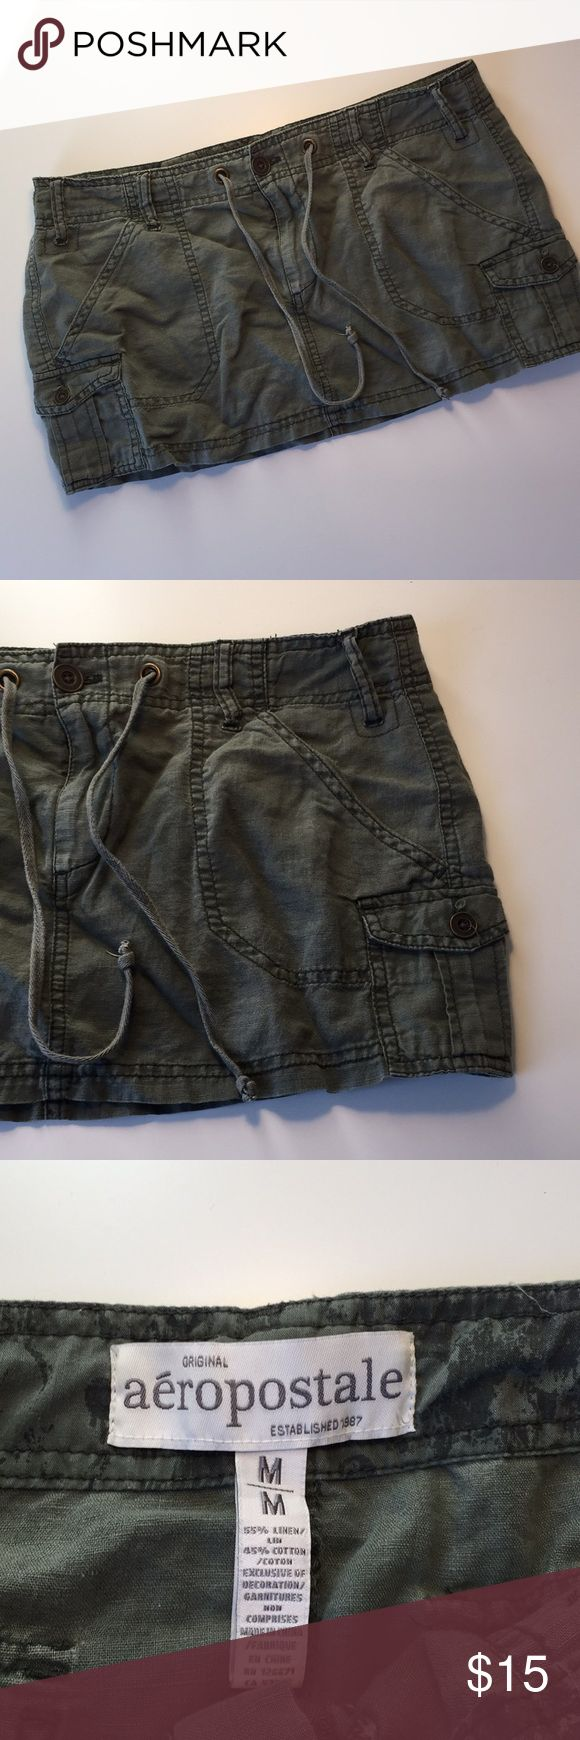 Aeropostale army green mini skirt Cute army green Aeropostale mini skirt. Never been worn and in excellent condition. See pictures for measurements. Aeropostale Skirts Mini